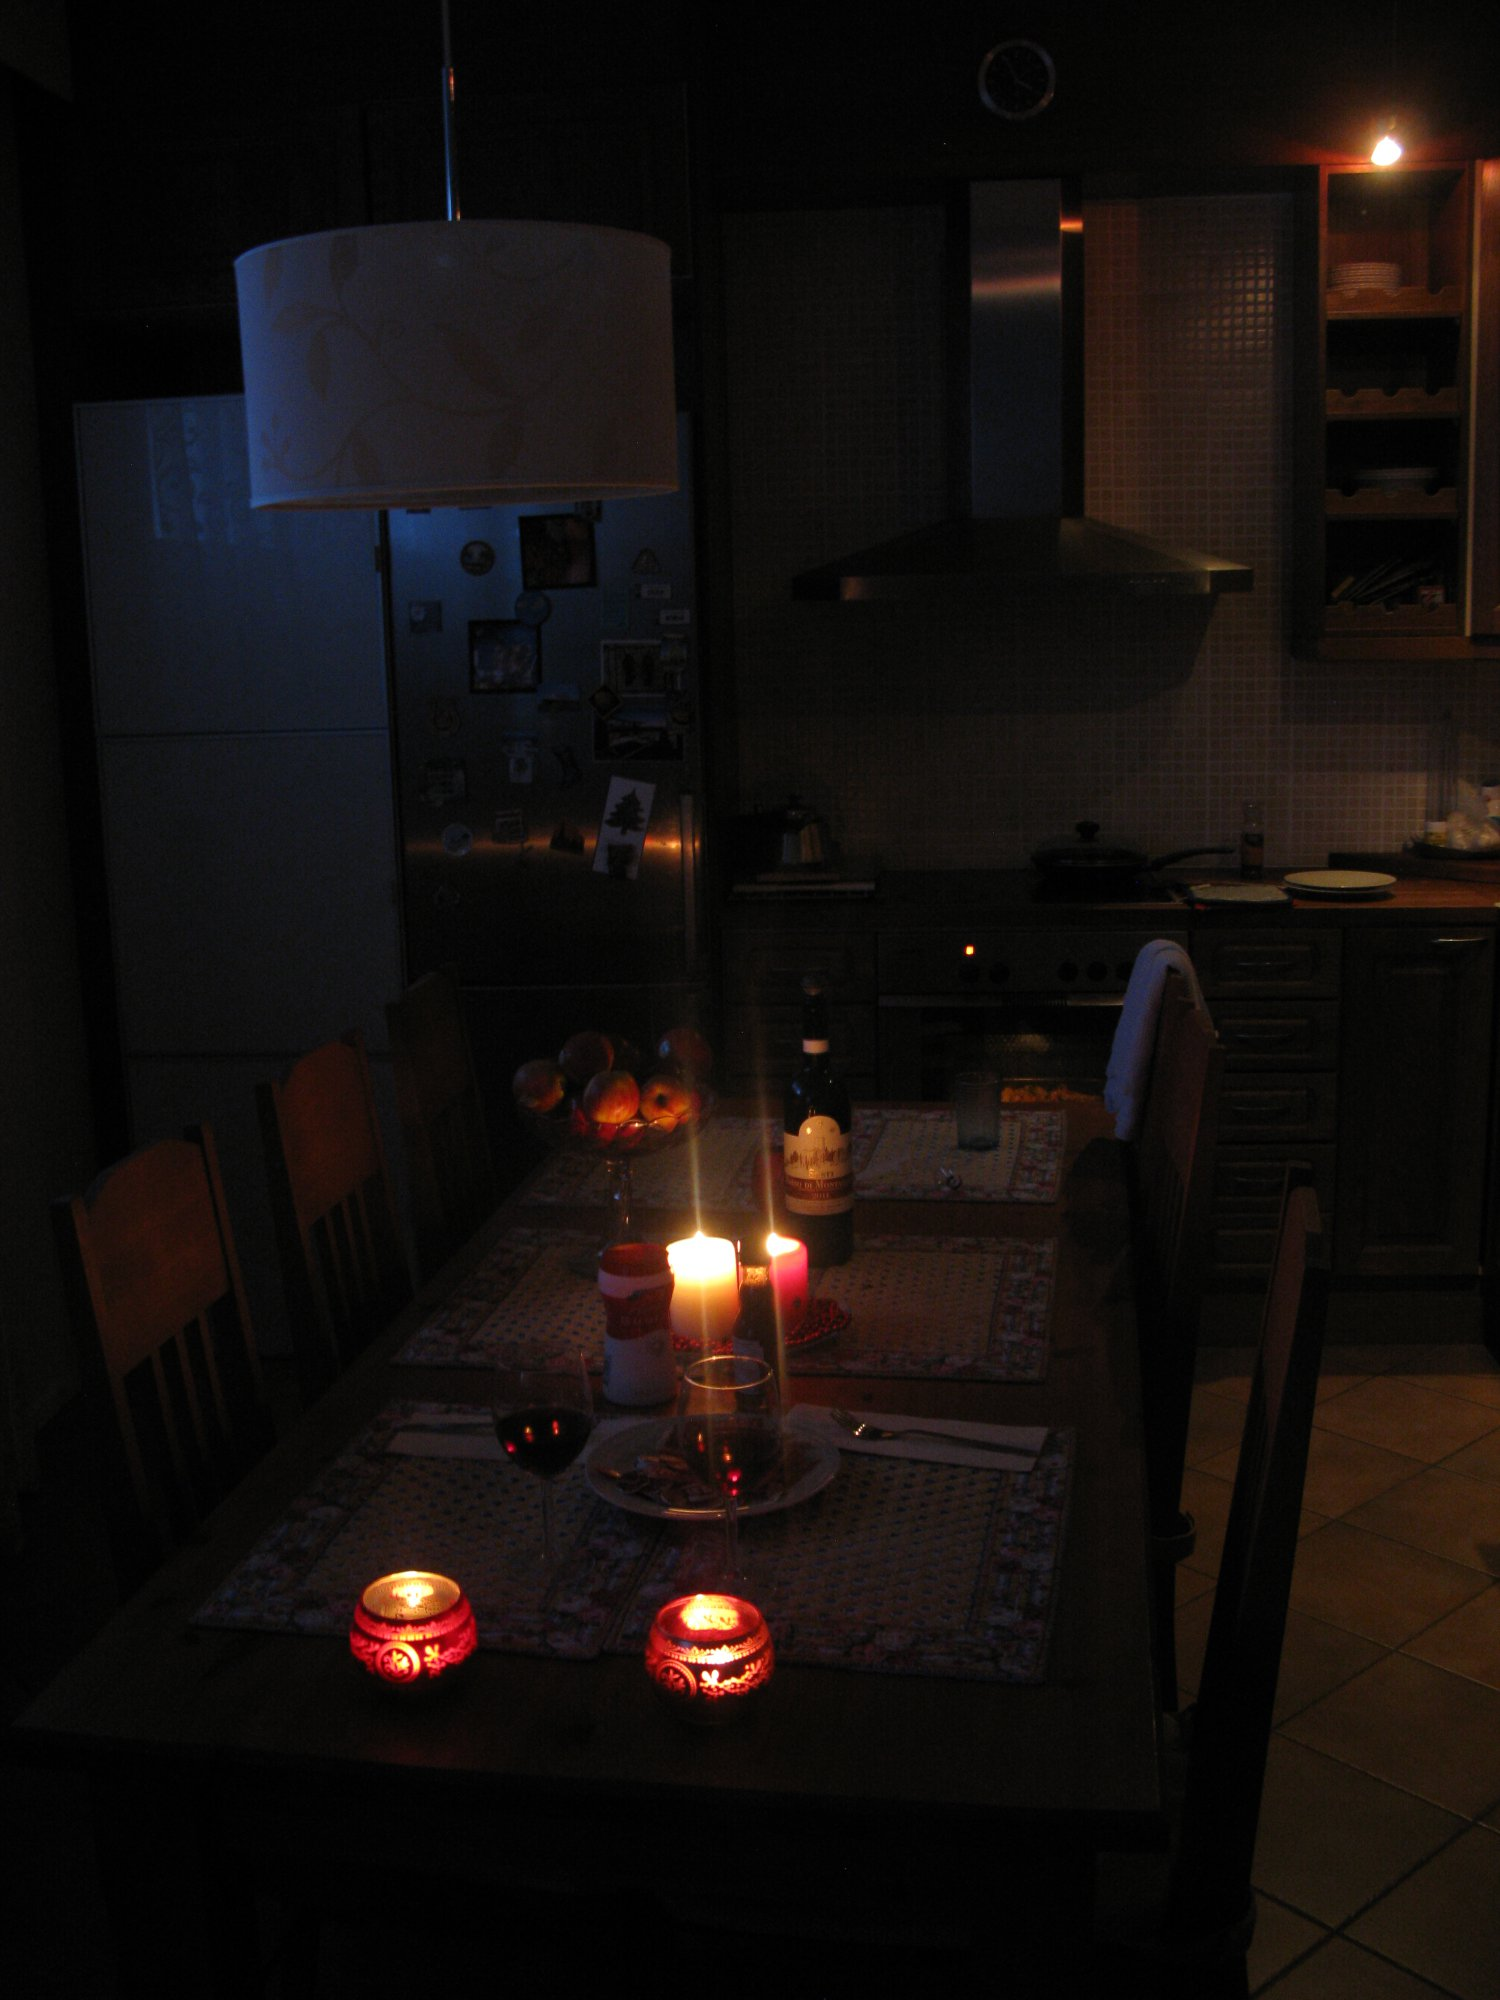 Cena romantica en casa y con jamoncito looking for a place in the world - Cena romantica a casa ...